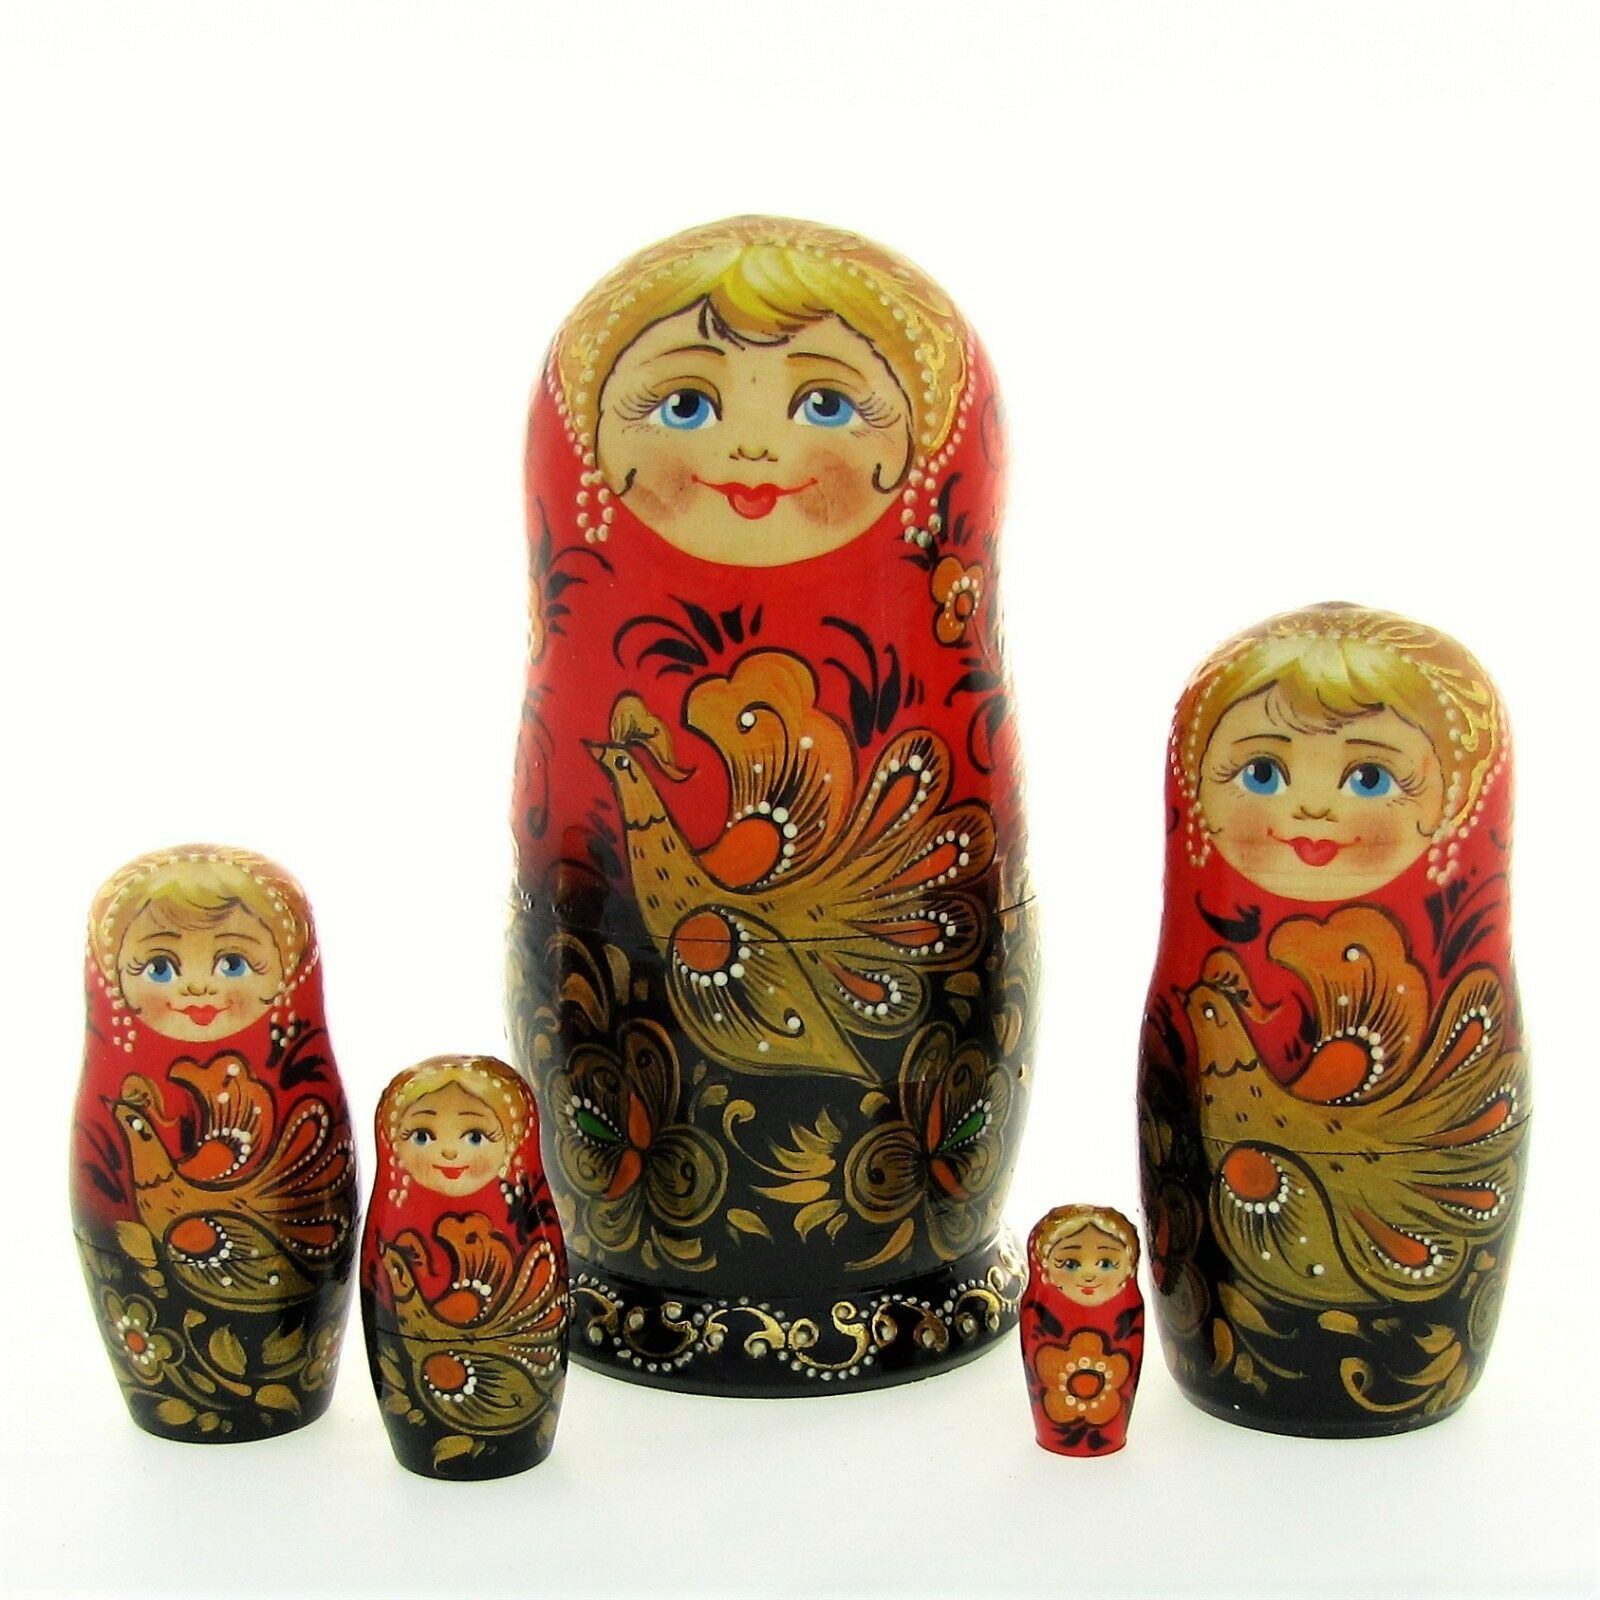 5 Poupées russes H18 peint main signé Matriochka Matriochka signé Gigognes Nested Doll Matrioshka df1b1d